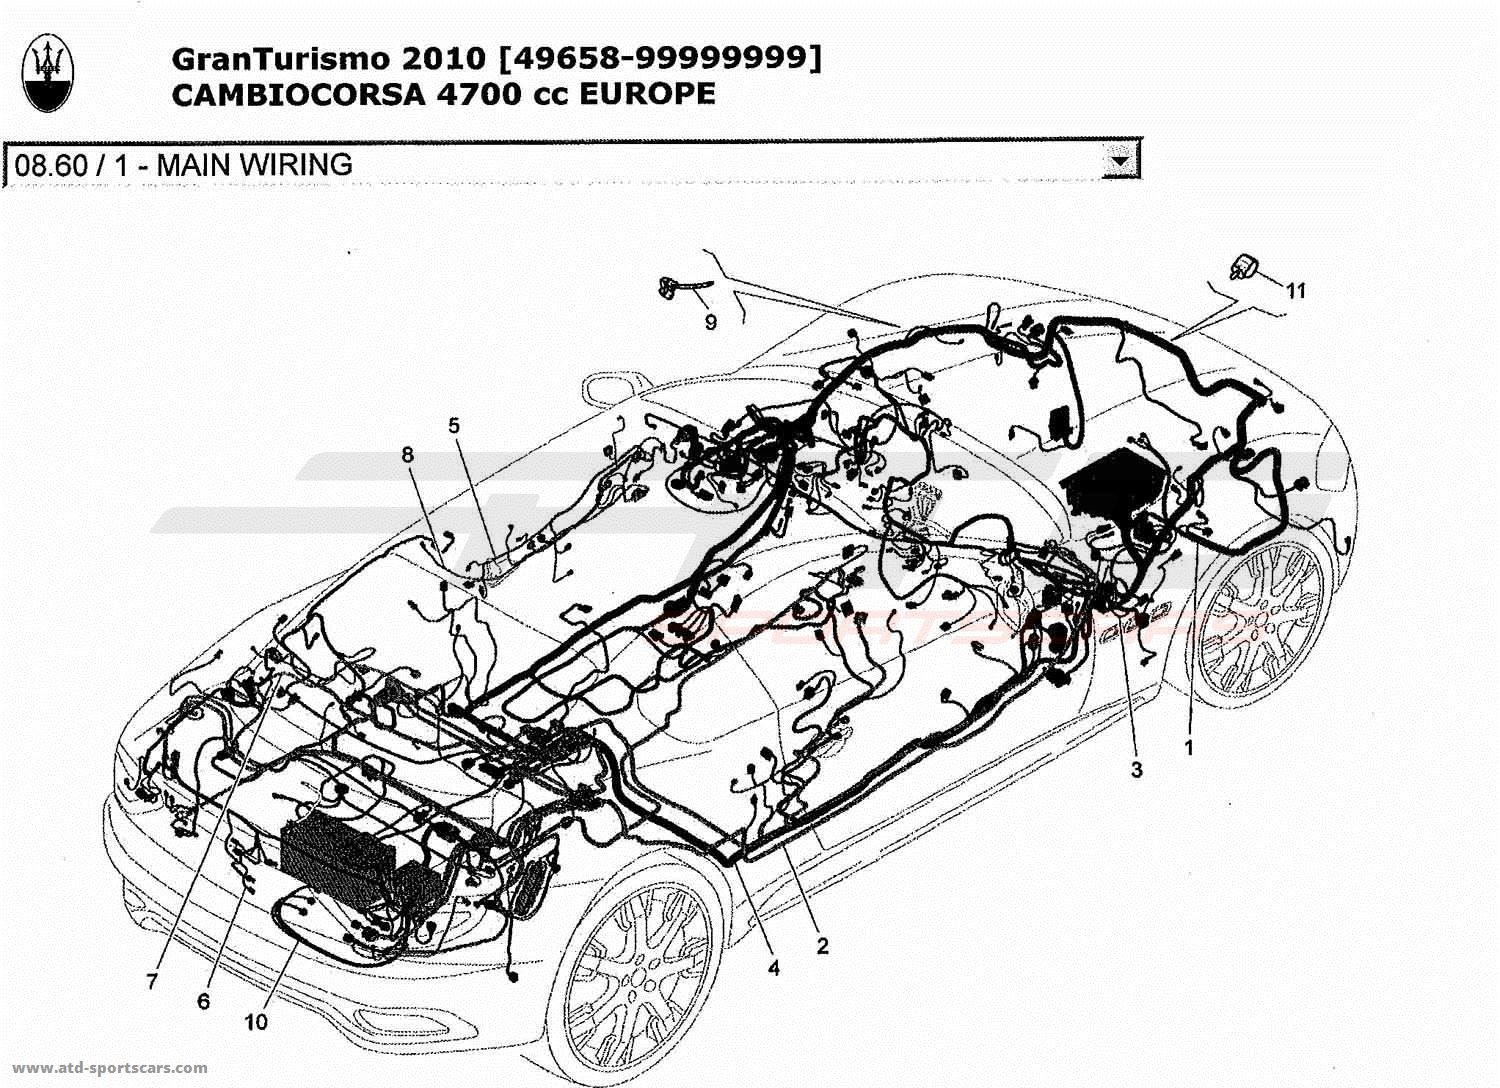 Maserati Granturismo 4 7l Boite F1 Electrical Parts At Atd Sportscars